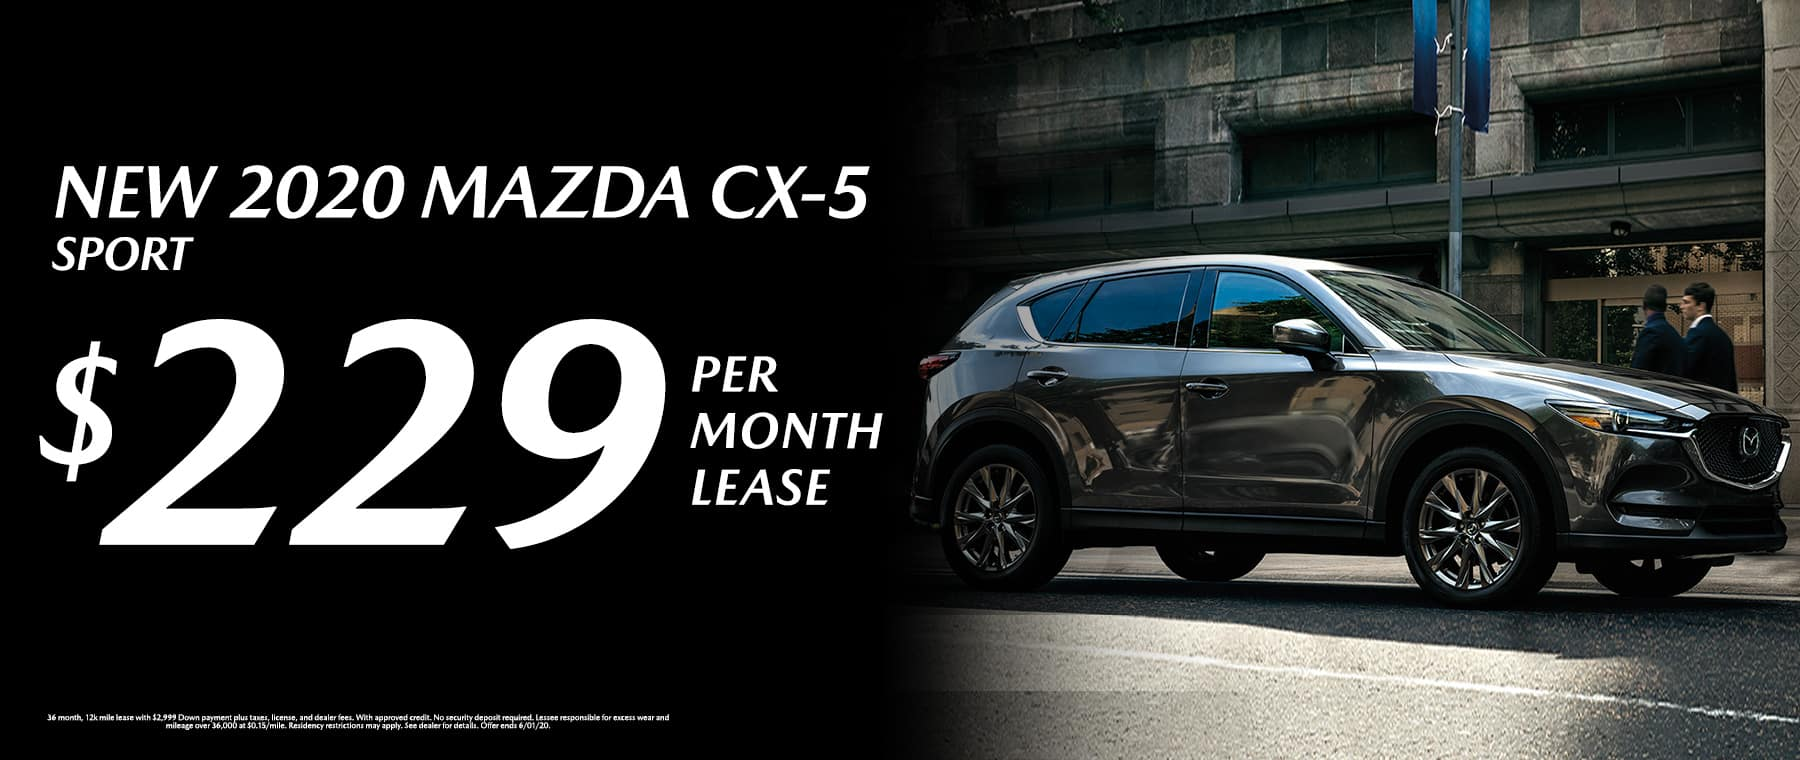 New 2020 Mazda CX-5 Sport at Mazda of Fort Walton Beach